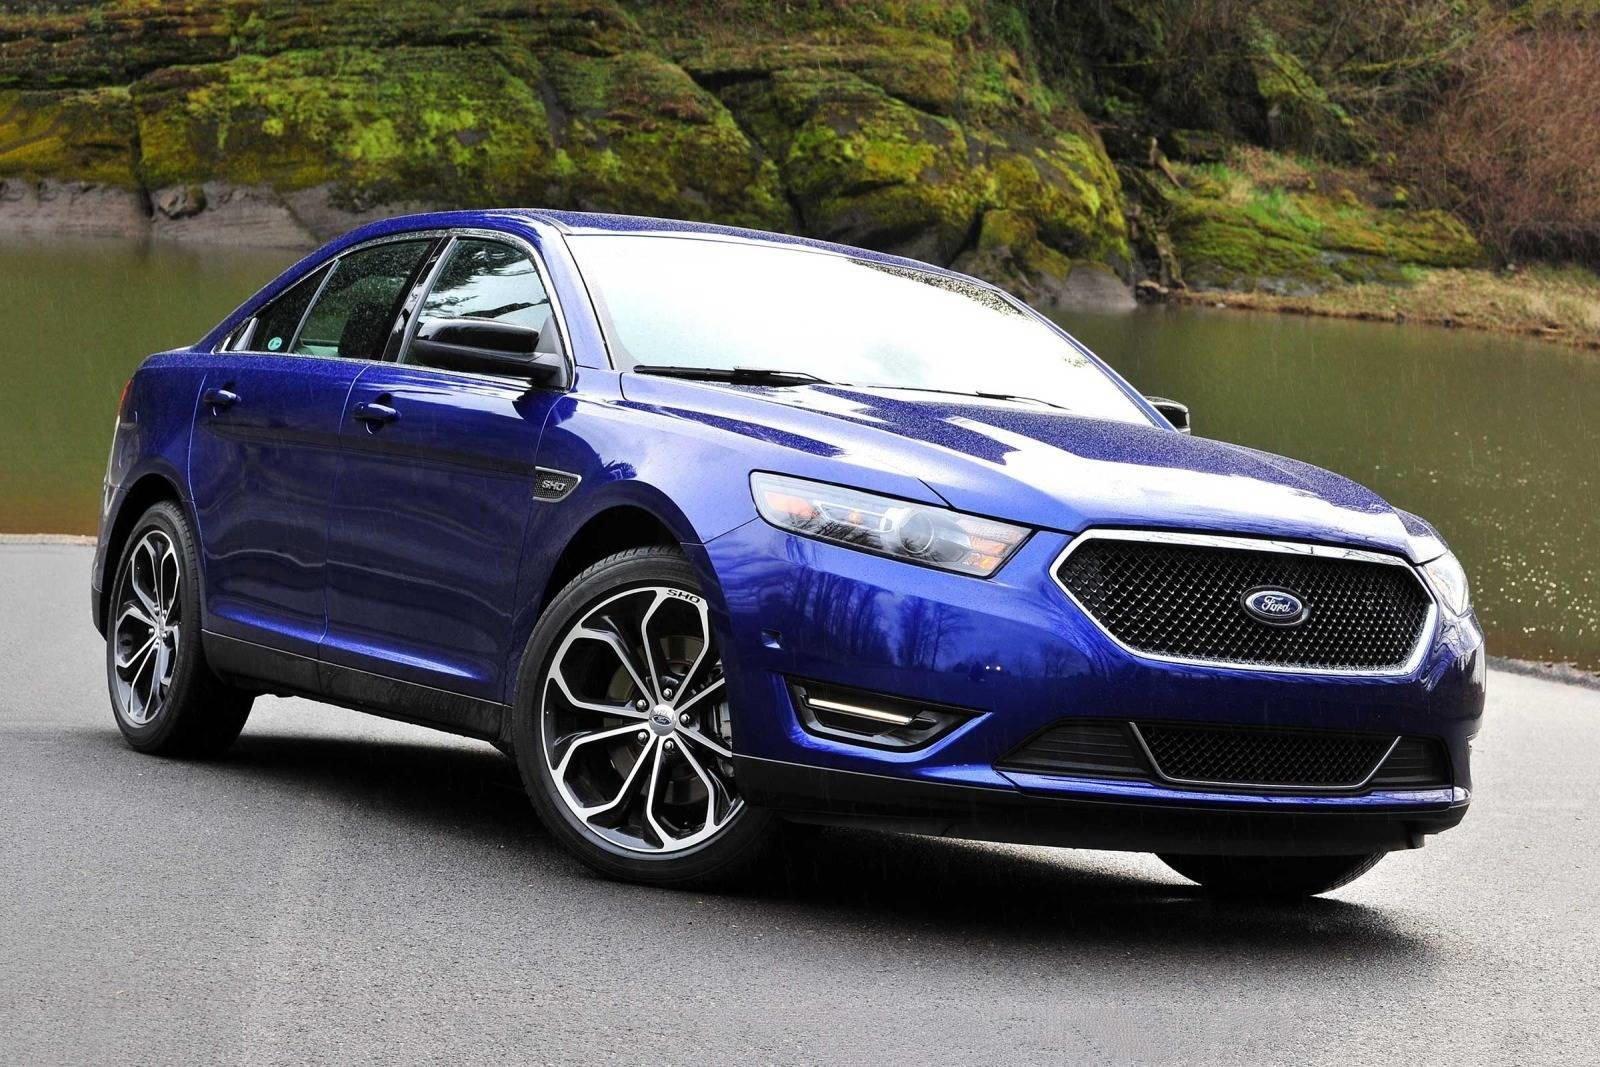 Check Out 2018 Ford Taurus Test Drive Review See The Price Trims And Specs Overview Compare Engines Features And Opt In 2020 Ford Taurus Sho 2014 Ford Taurus Ford